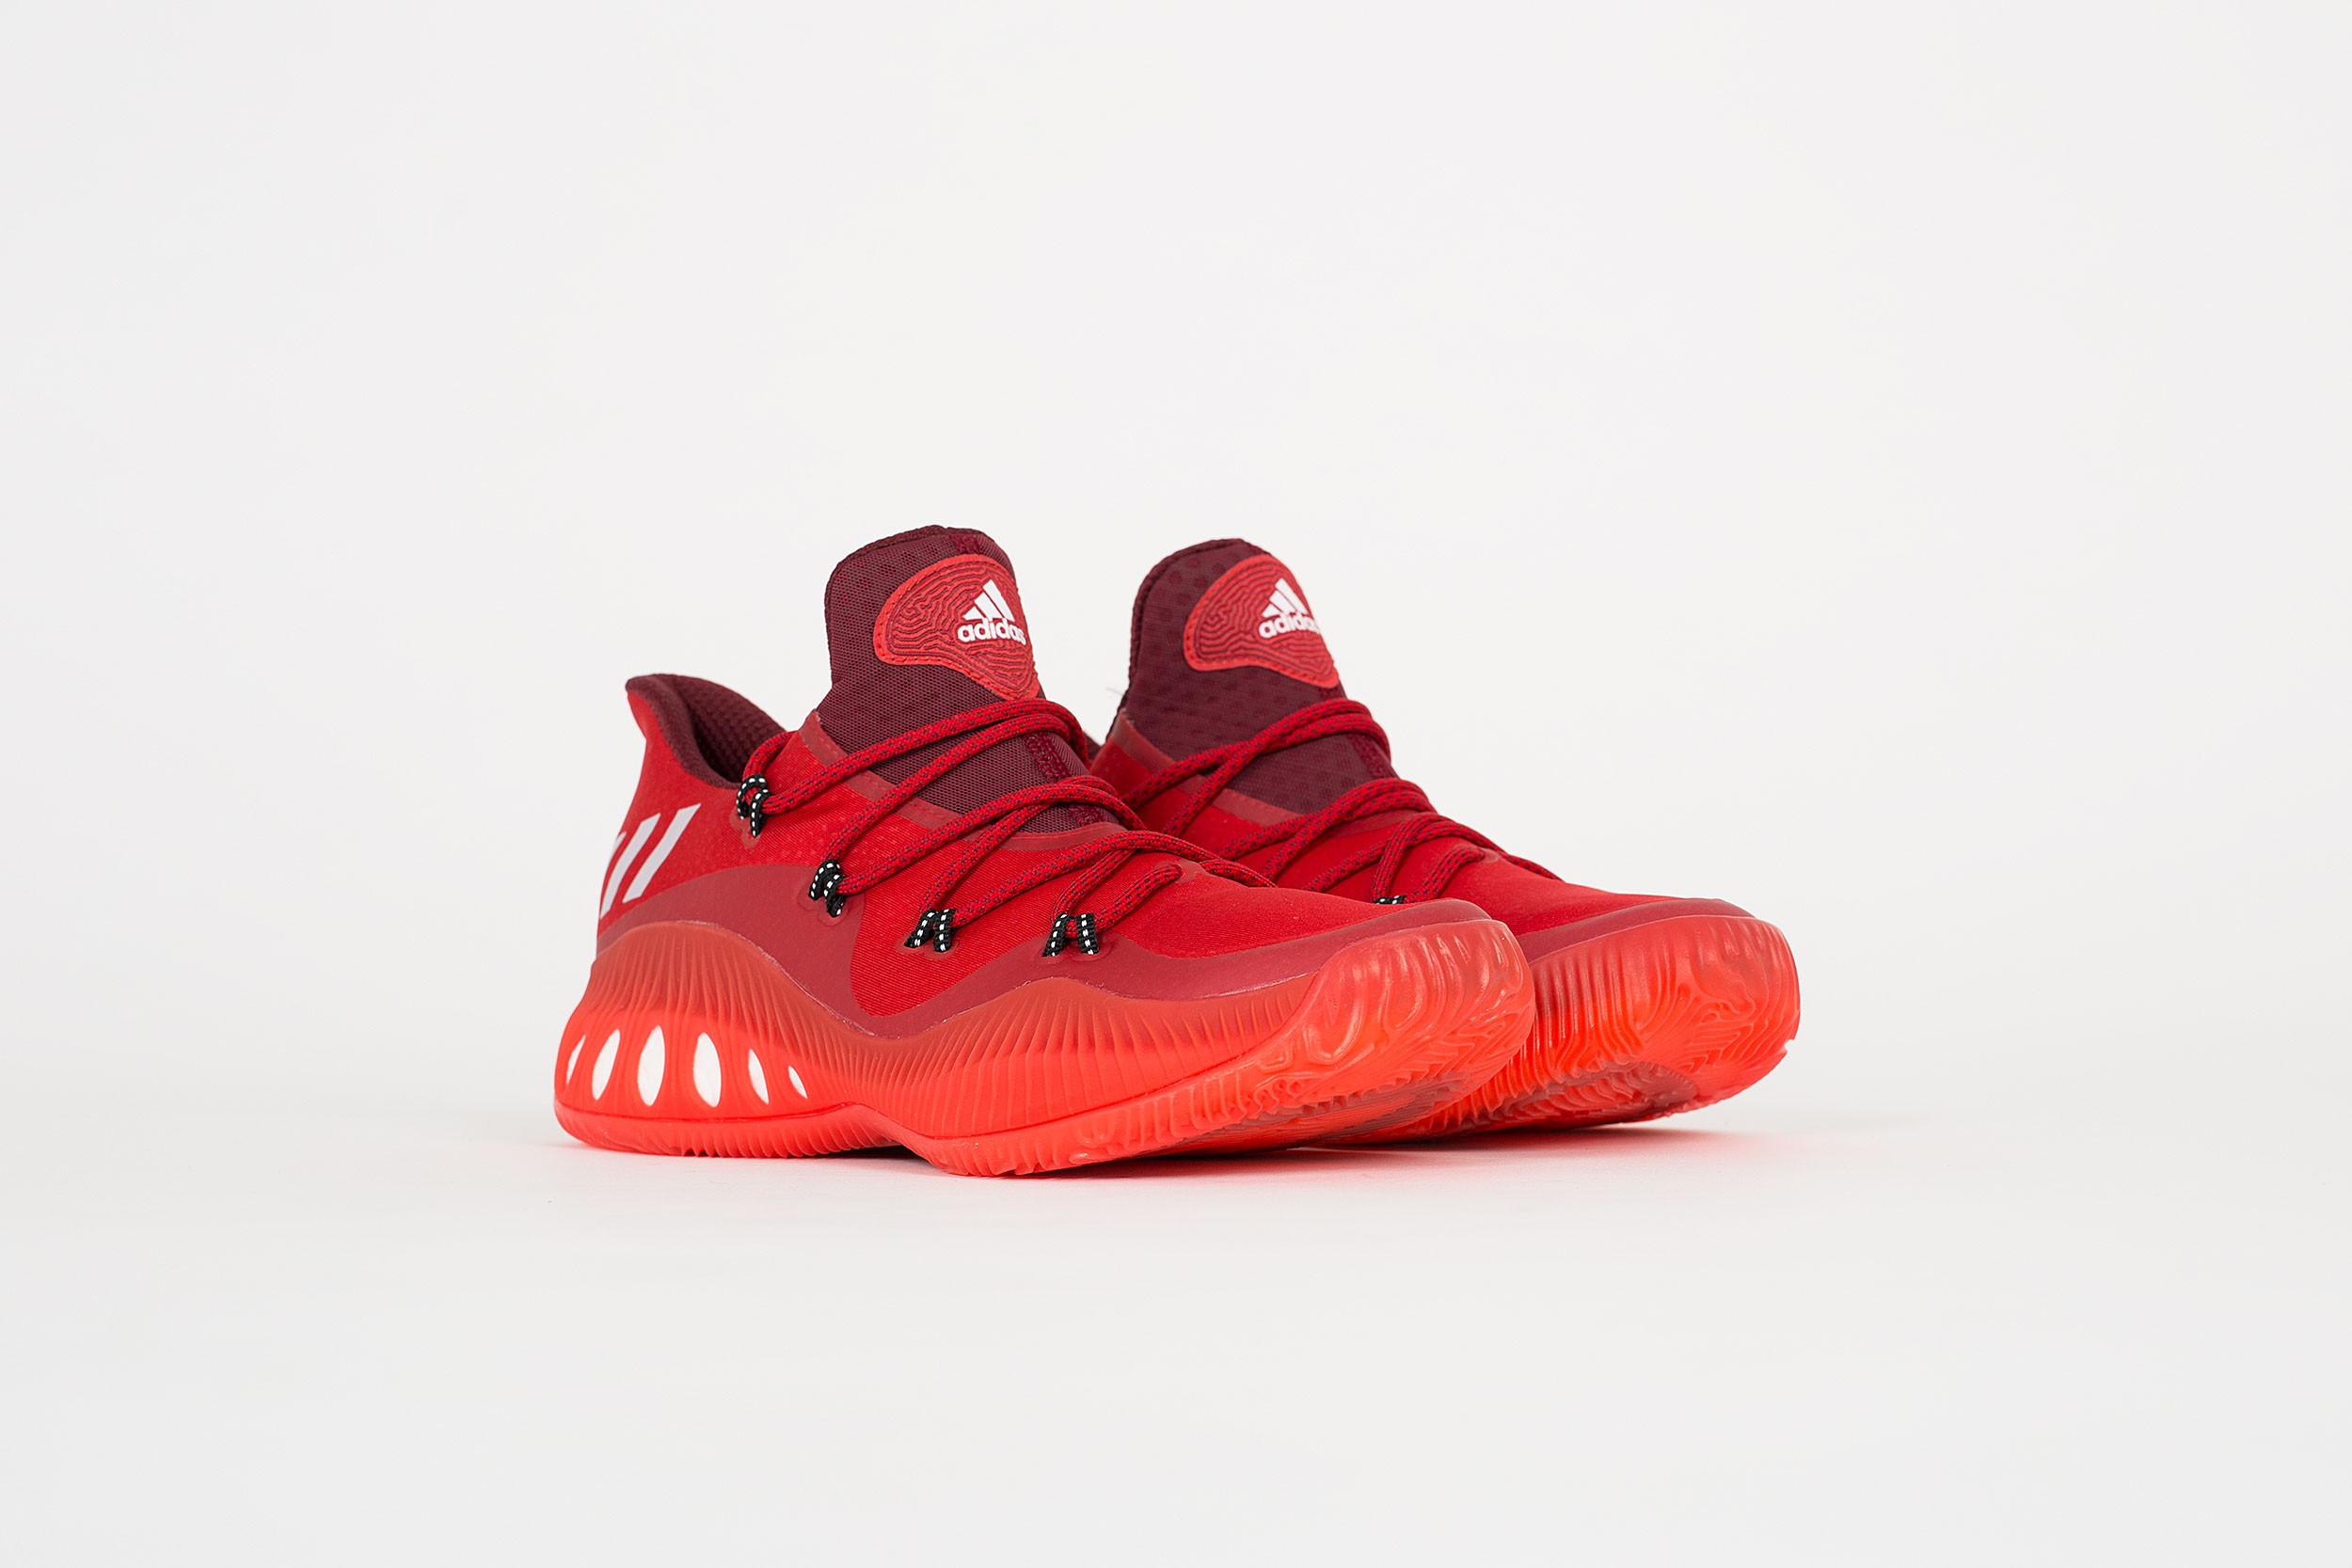 The adidas Crazy Explosive Low in